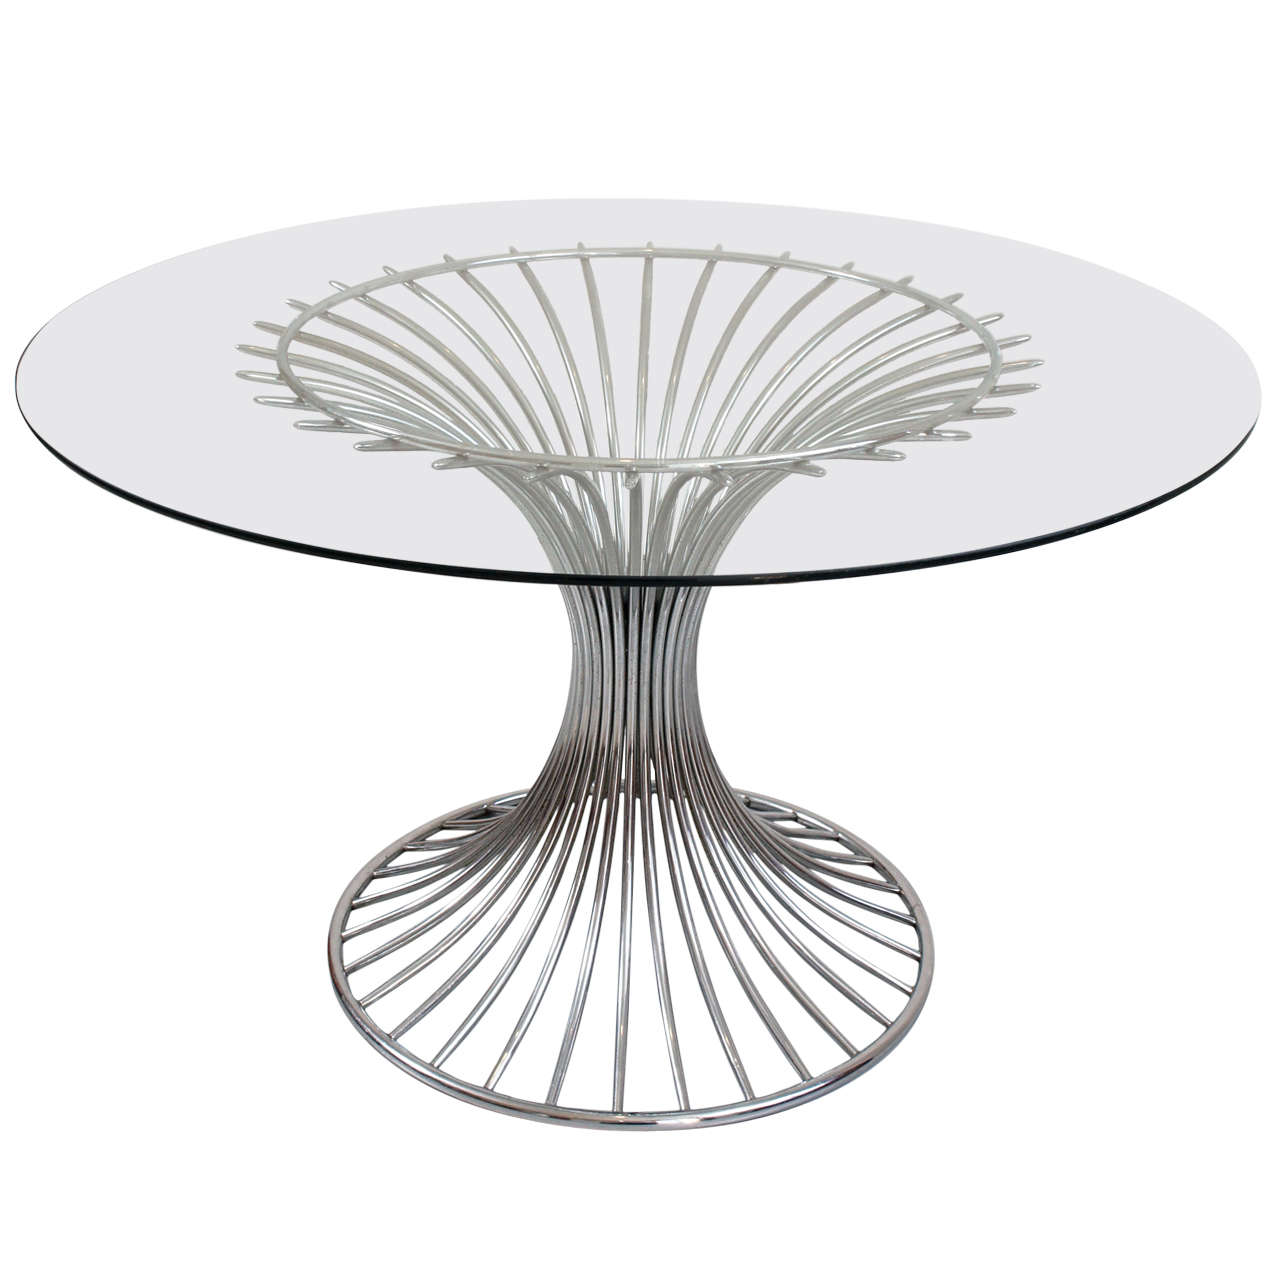 Mid 20th Century Chrome and Glass Top Round Dining Table  : X from 1stdibs.com size 1280 x 1280 jpeg 88kB